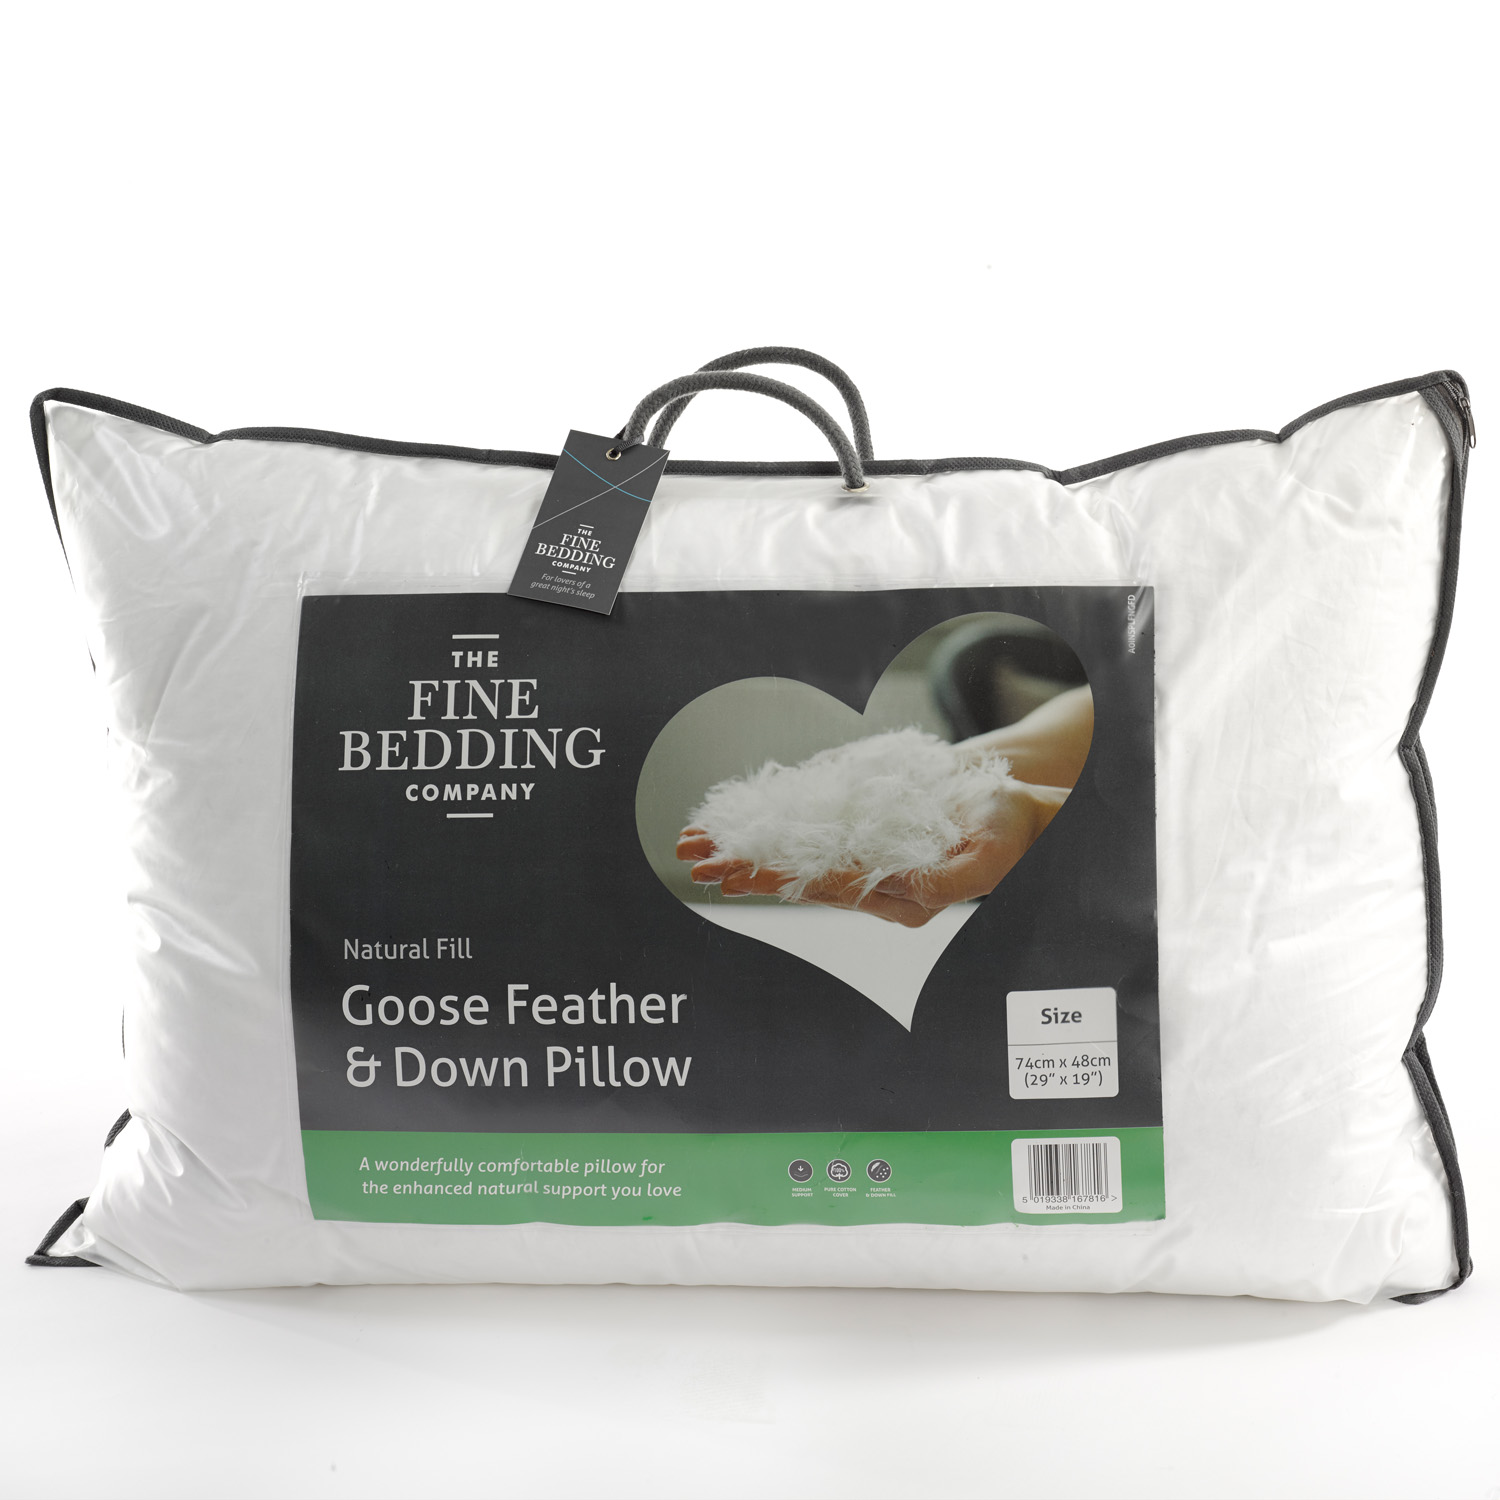 Pillow Goose Feather & Down